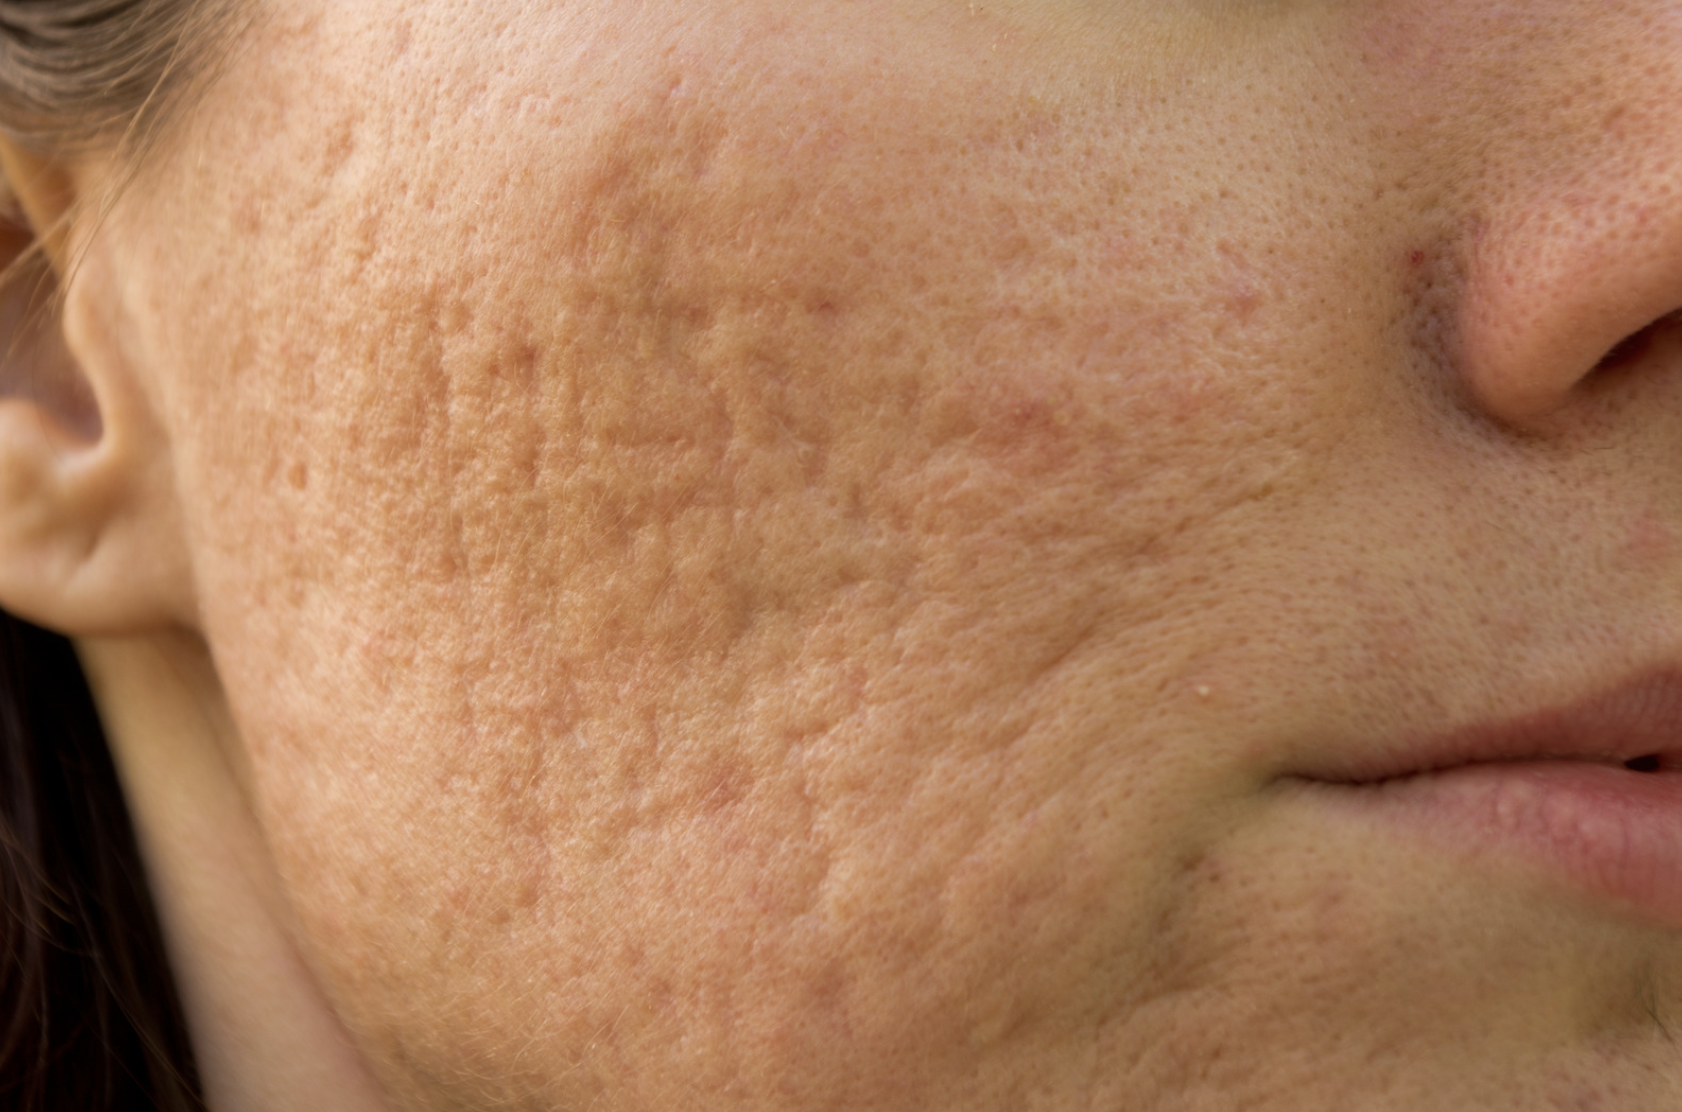 Will Acne Scars Fade on Their Own?